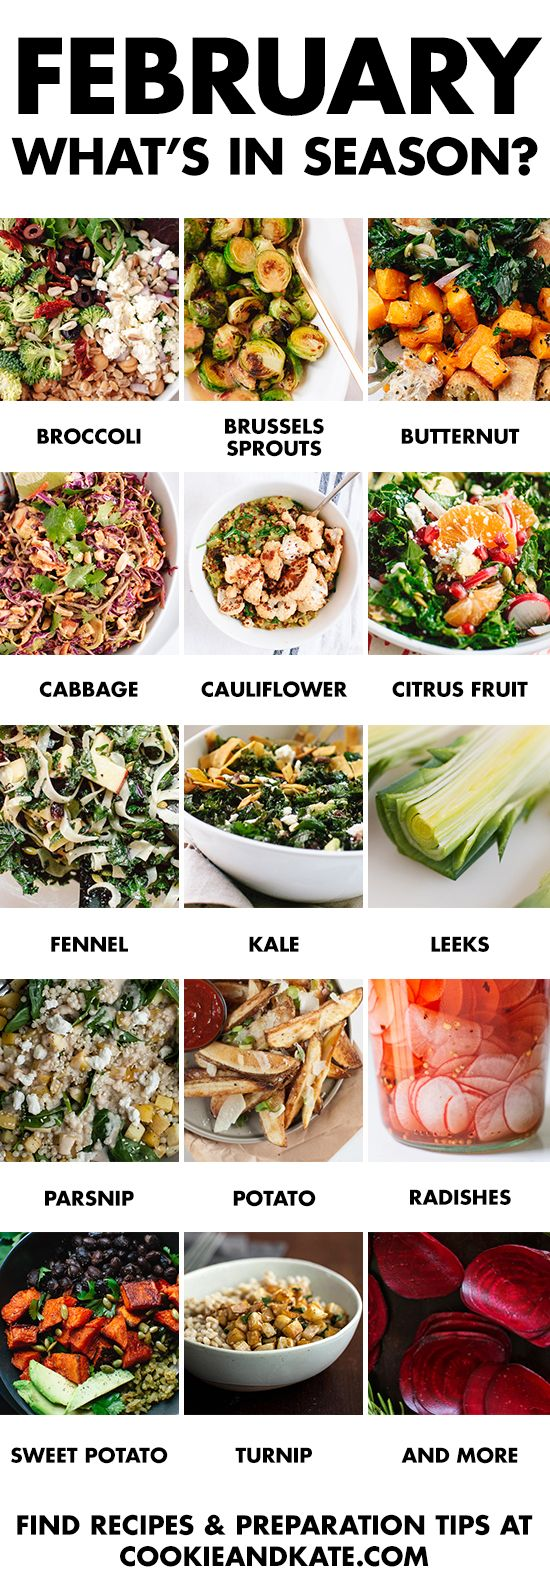 Eat seasonally with this guide to February fruits and vegetables. Find recipes and preparation tips at cookieandkate.com: